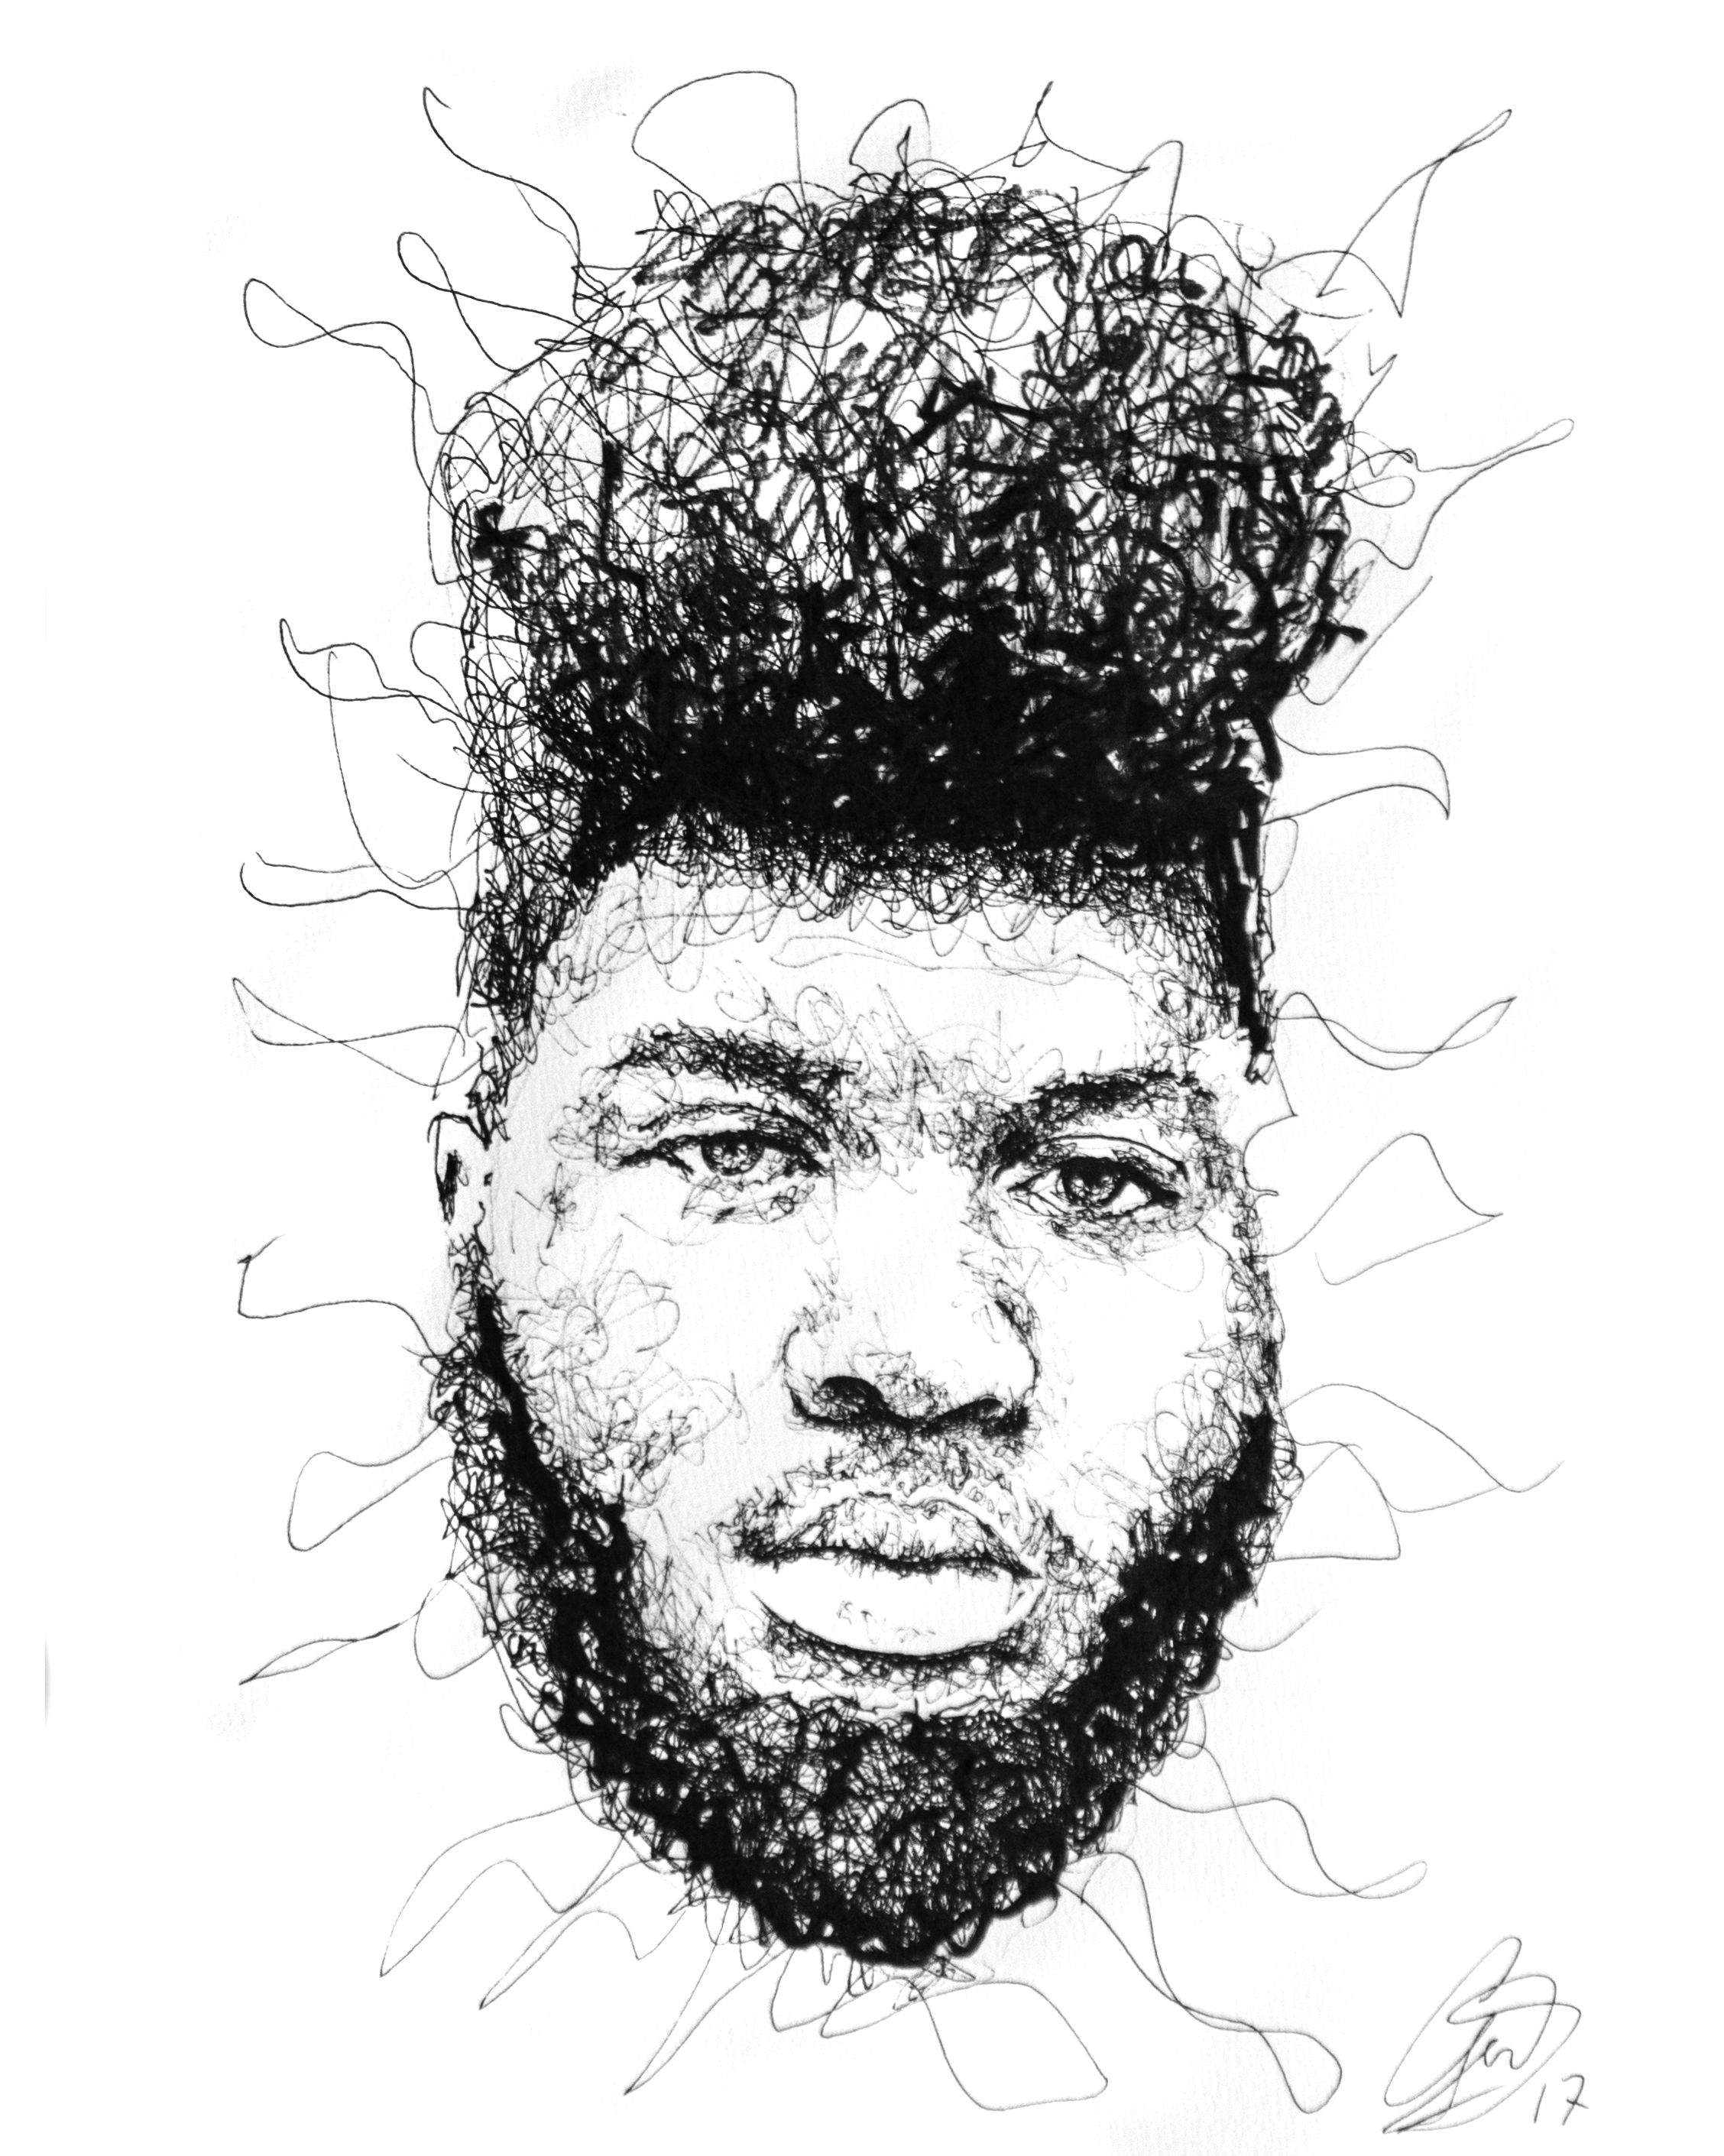 Khalid black and white portrait scribble art by gus romano drawing with a black pen scribble art young dumb and broke drawing best of